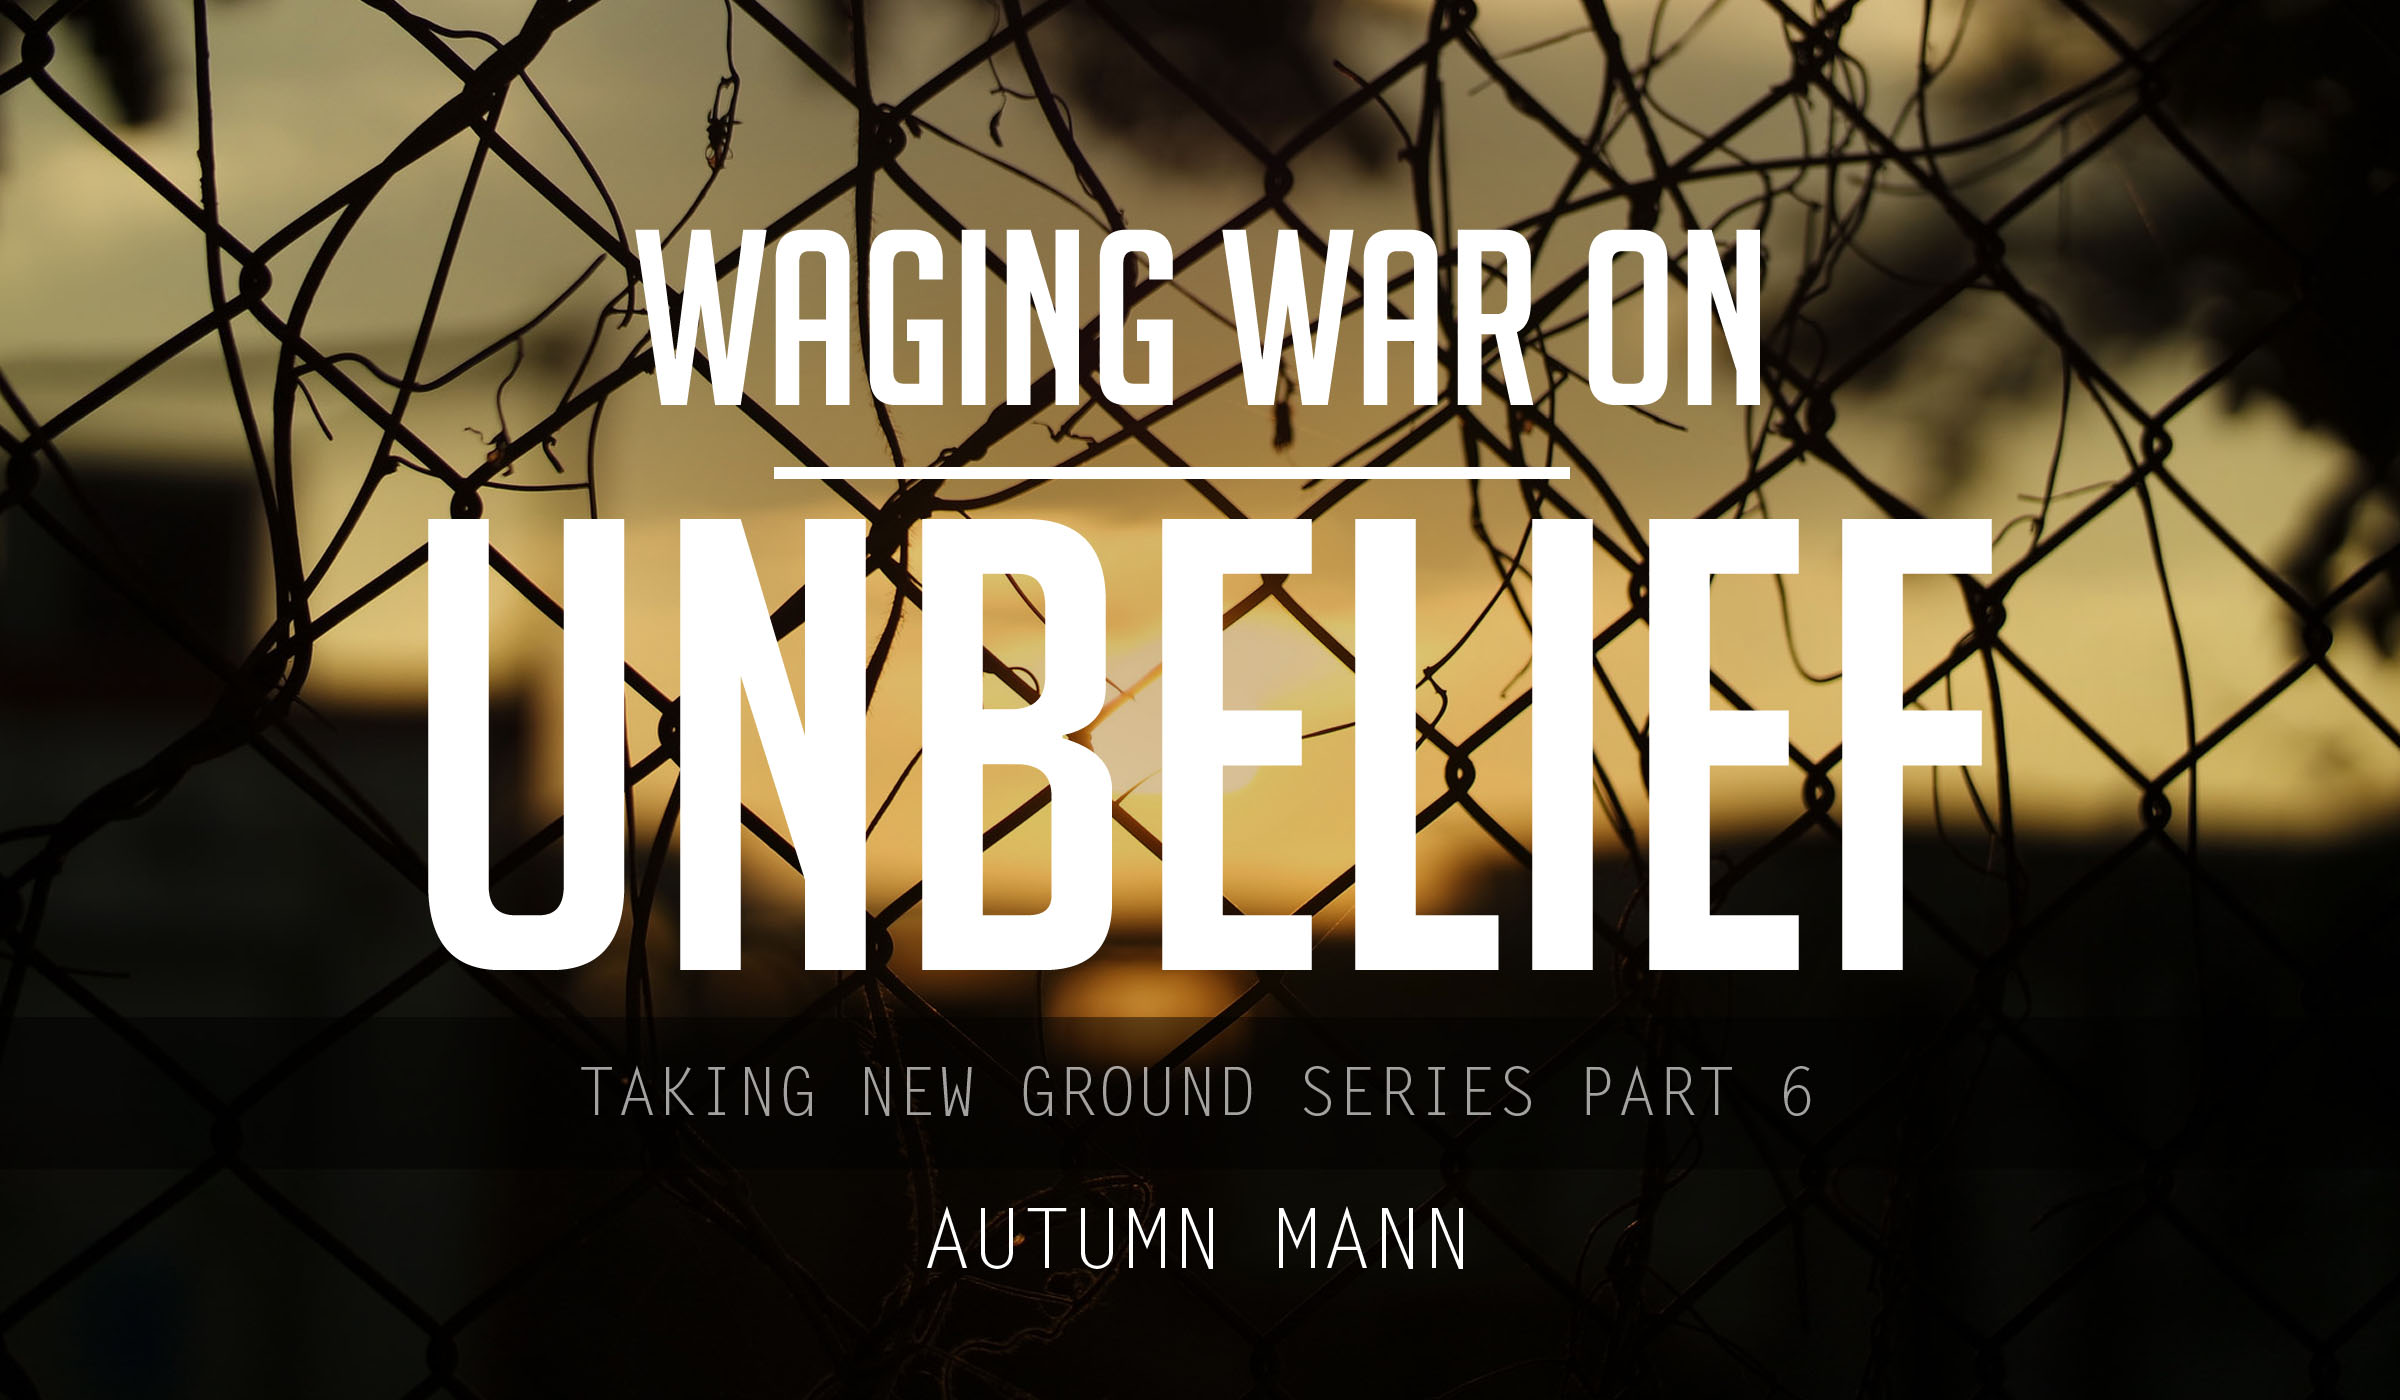 Waging War on Unbelief